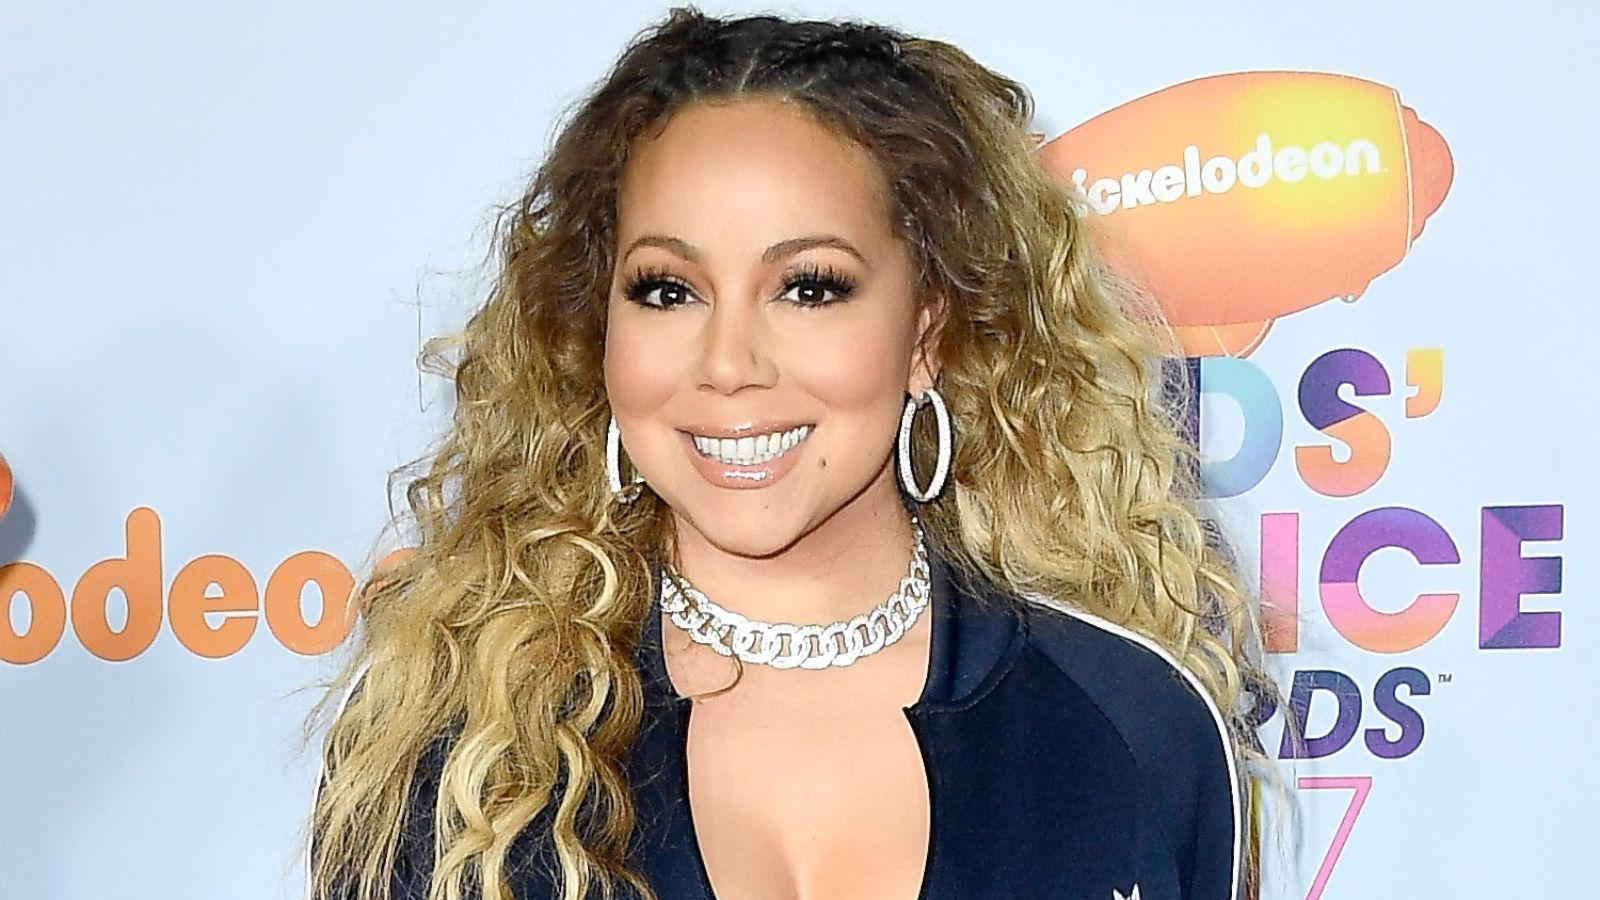 Notorious Diva Mariah Carey Claims Normalcy in New Docuseries Trailer: I'm Like AnybodyElse' Notorious Diva Mariah Carey Claims Normalcy in New Docuseries Trailer: I'm Like AnybodyElse' new pics